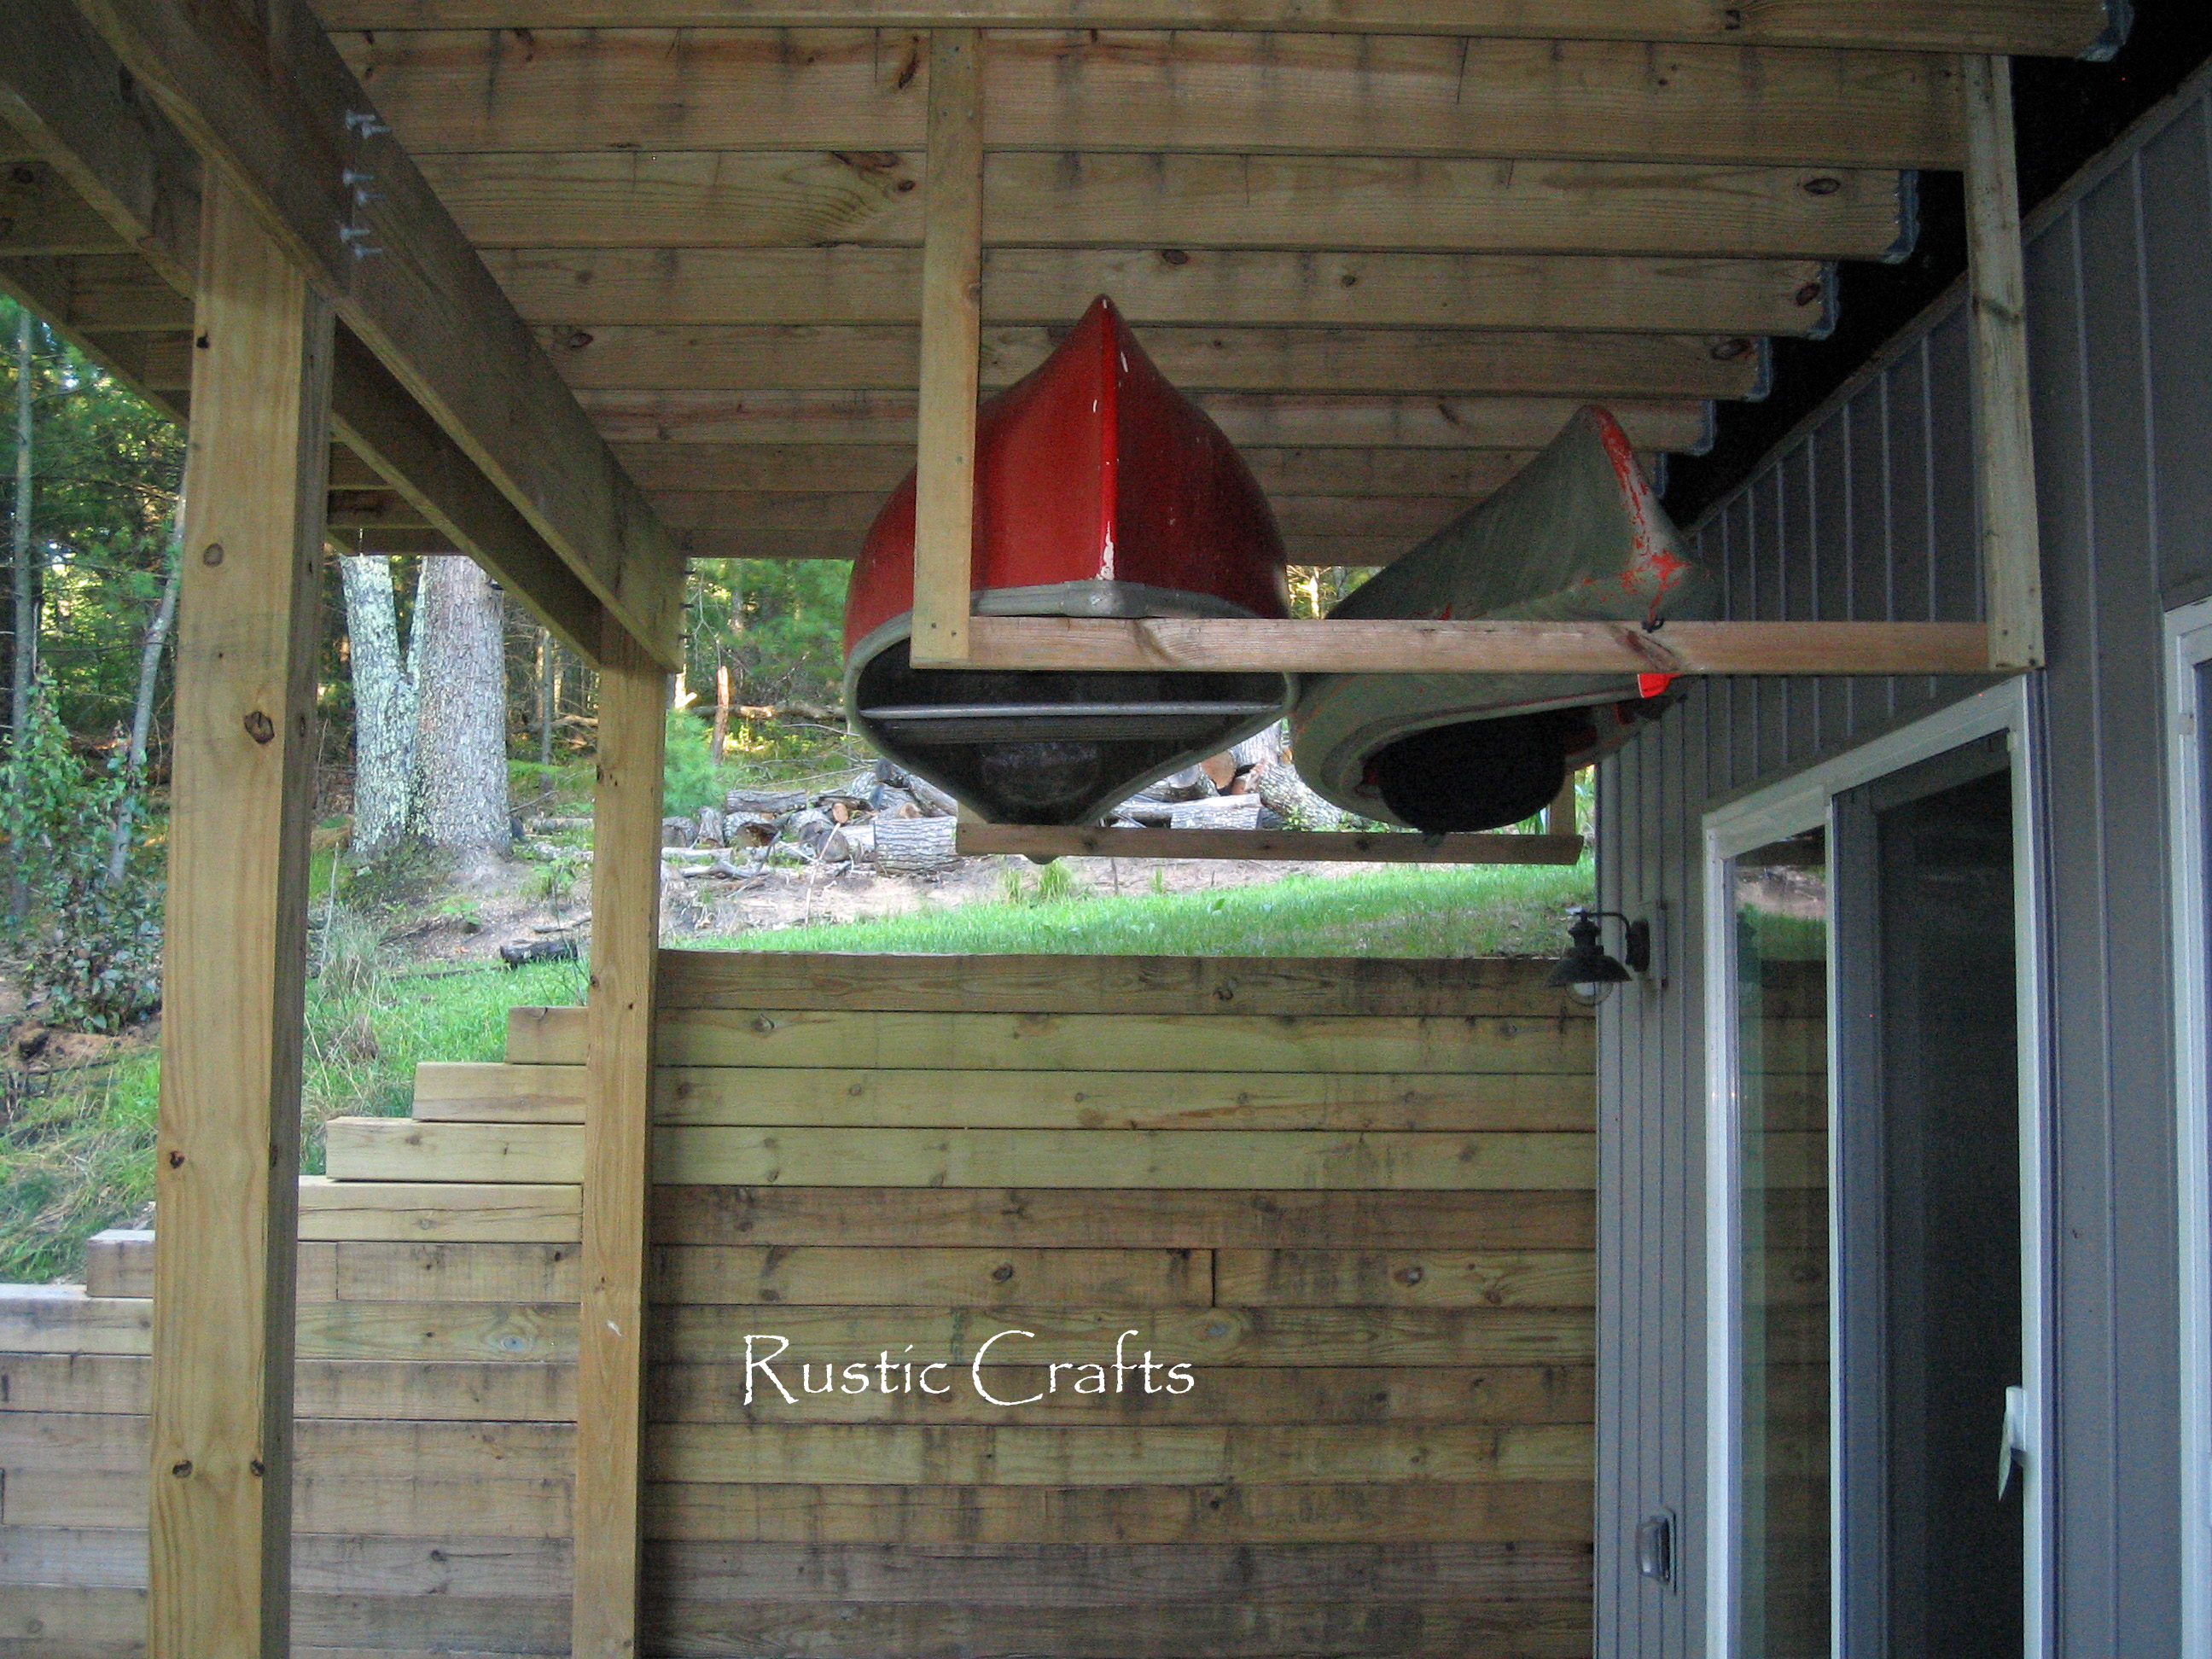 How To Build A Rustic Patio Out Of Recycled Brick Rustic & Canoe Storage Ideas - Listitdallas